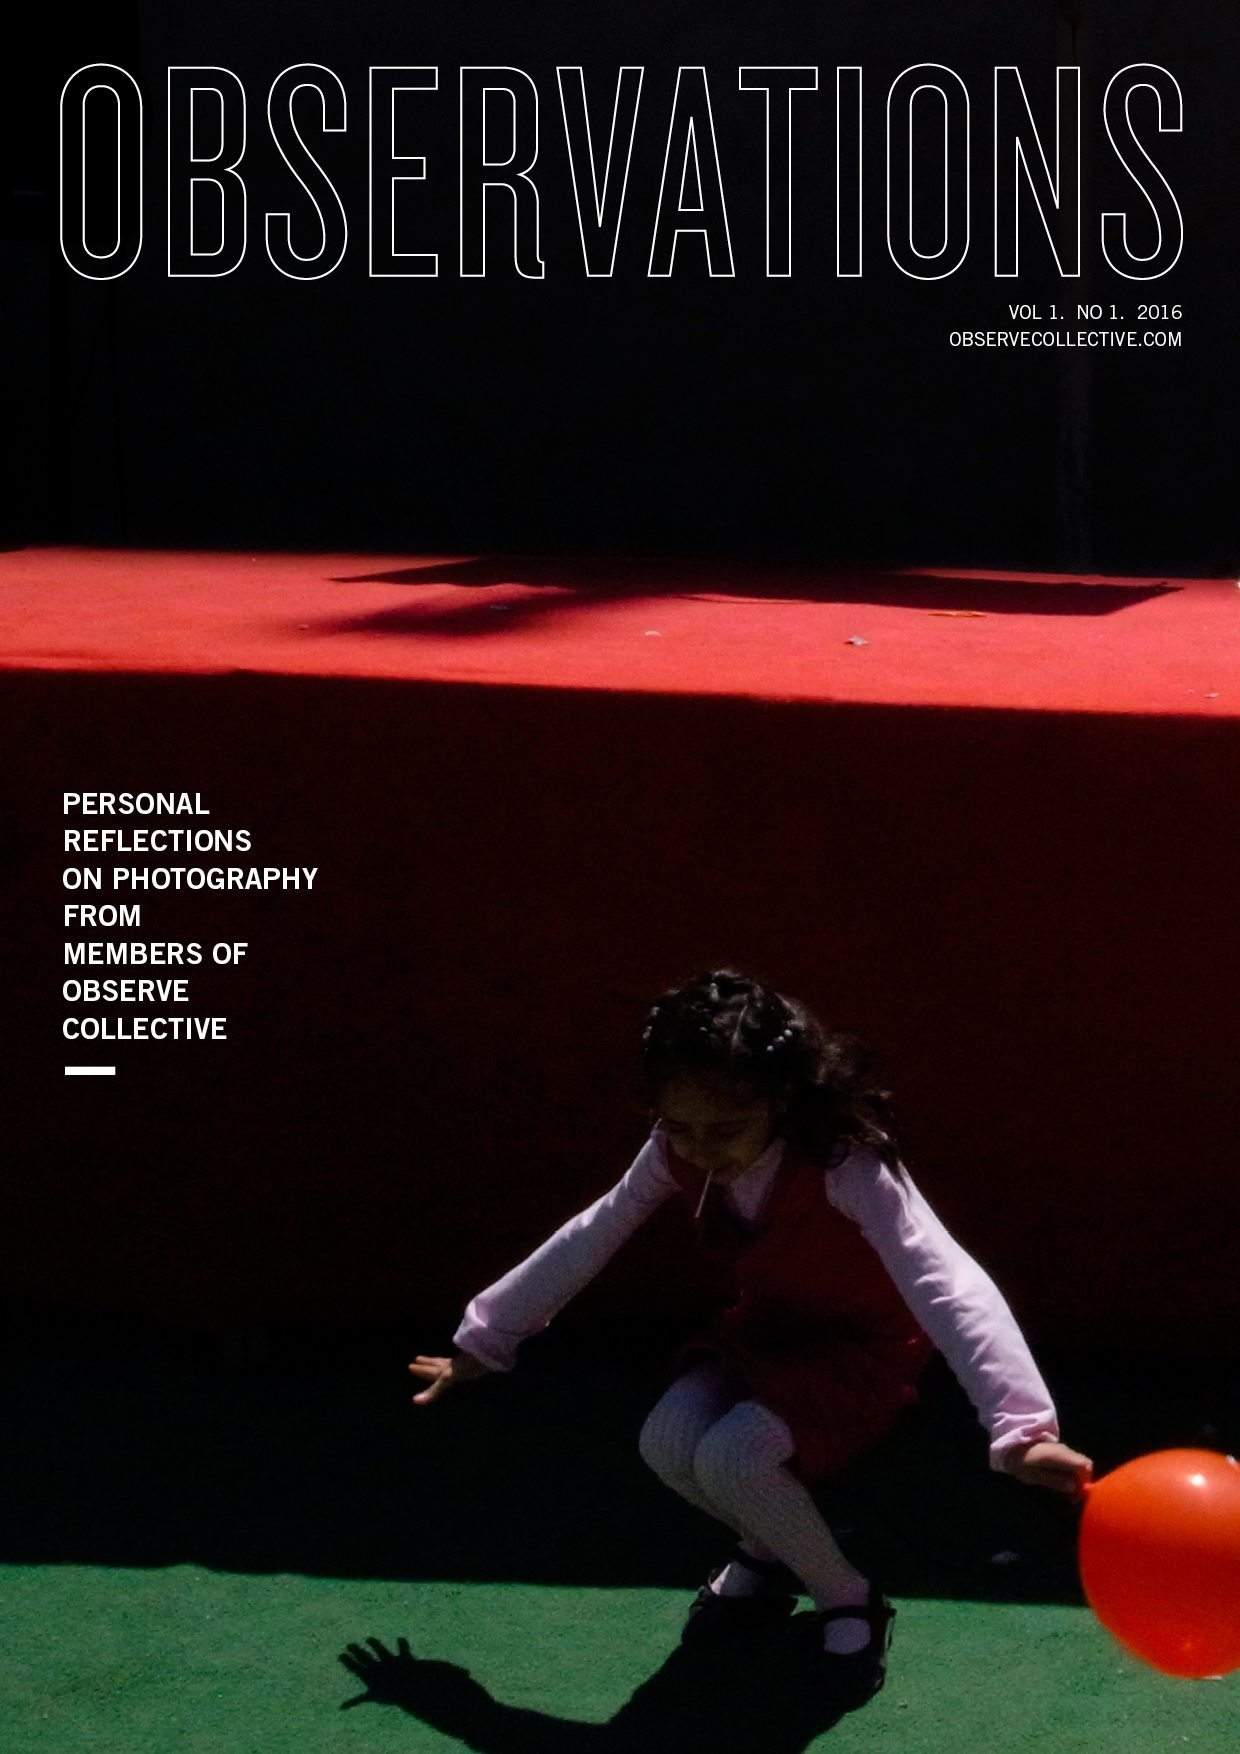 Observations Vol. 1 No. 1 by the Observe Collective Out Now